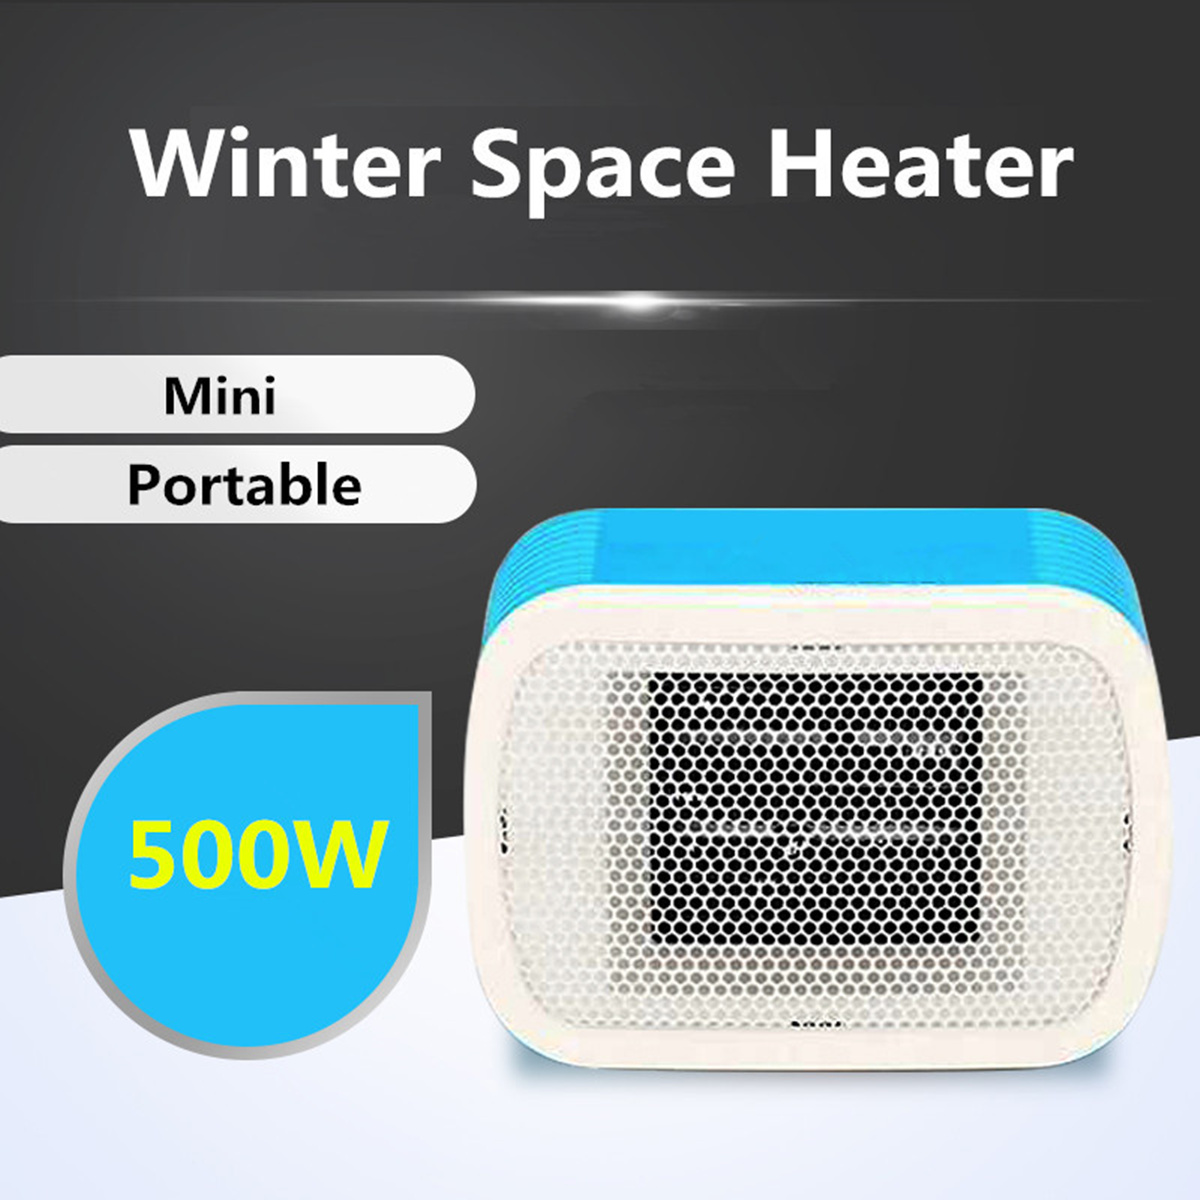 Portable 500W Electric Fan Winter Space Heater Mini Desktop Warm Convector